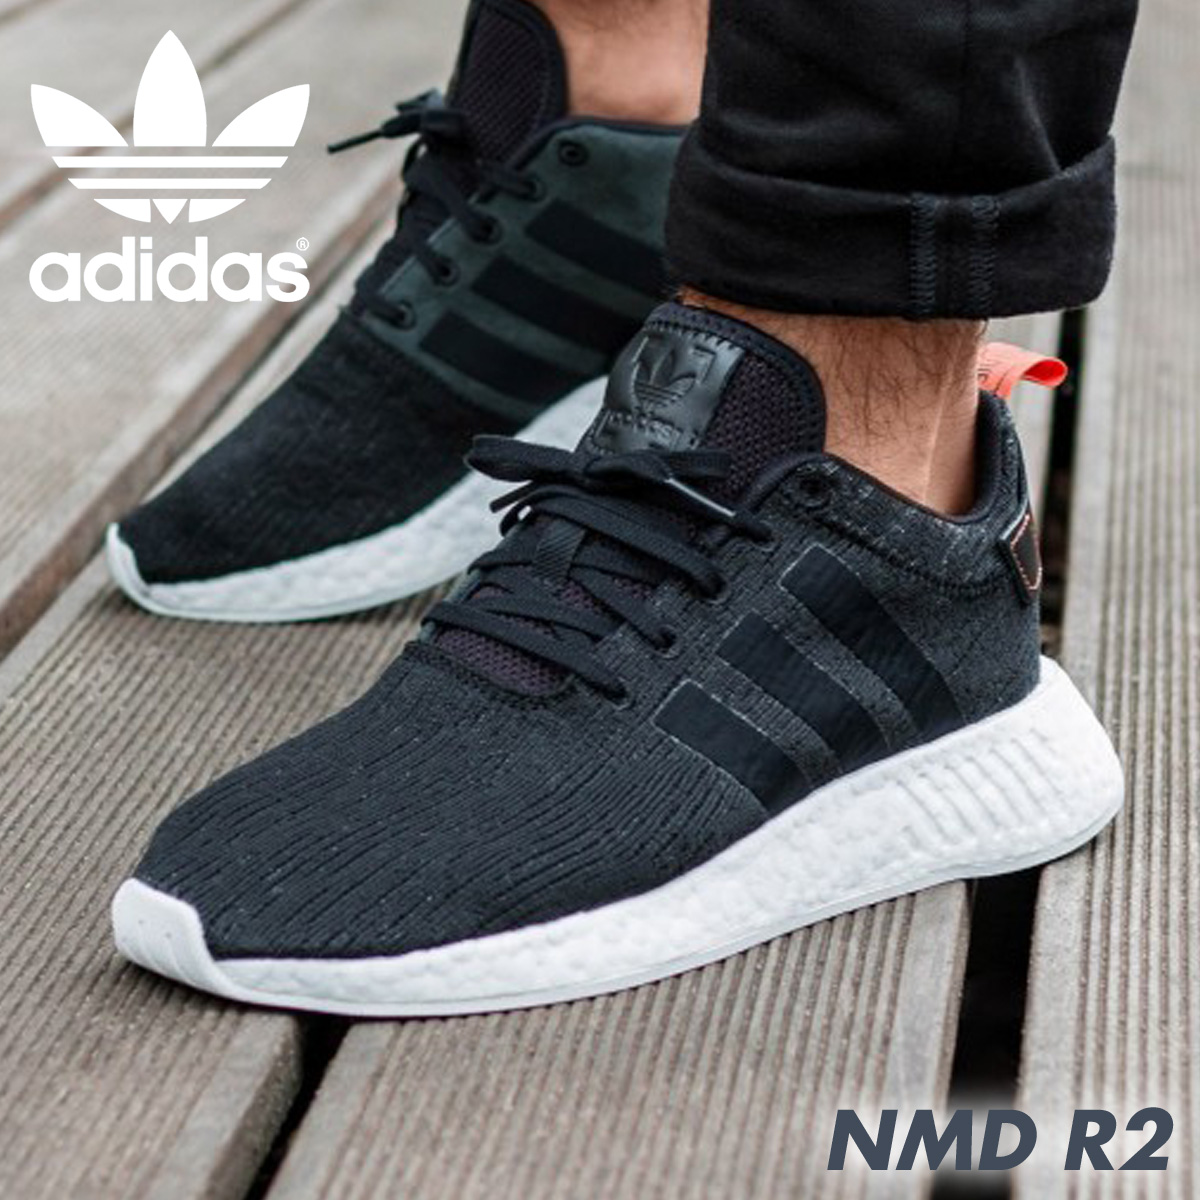 adidas NMD R2 Grey White BY3014 Condito · ShoePalace on Twitter  b6390eb05